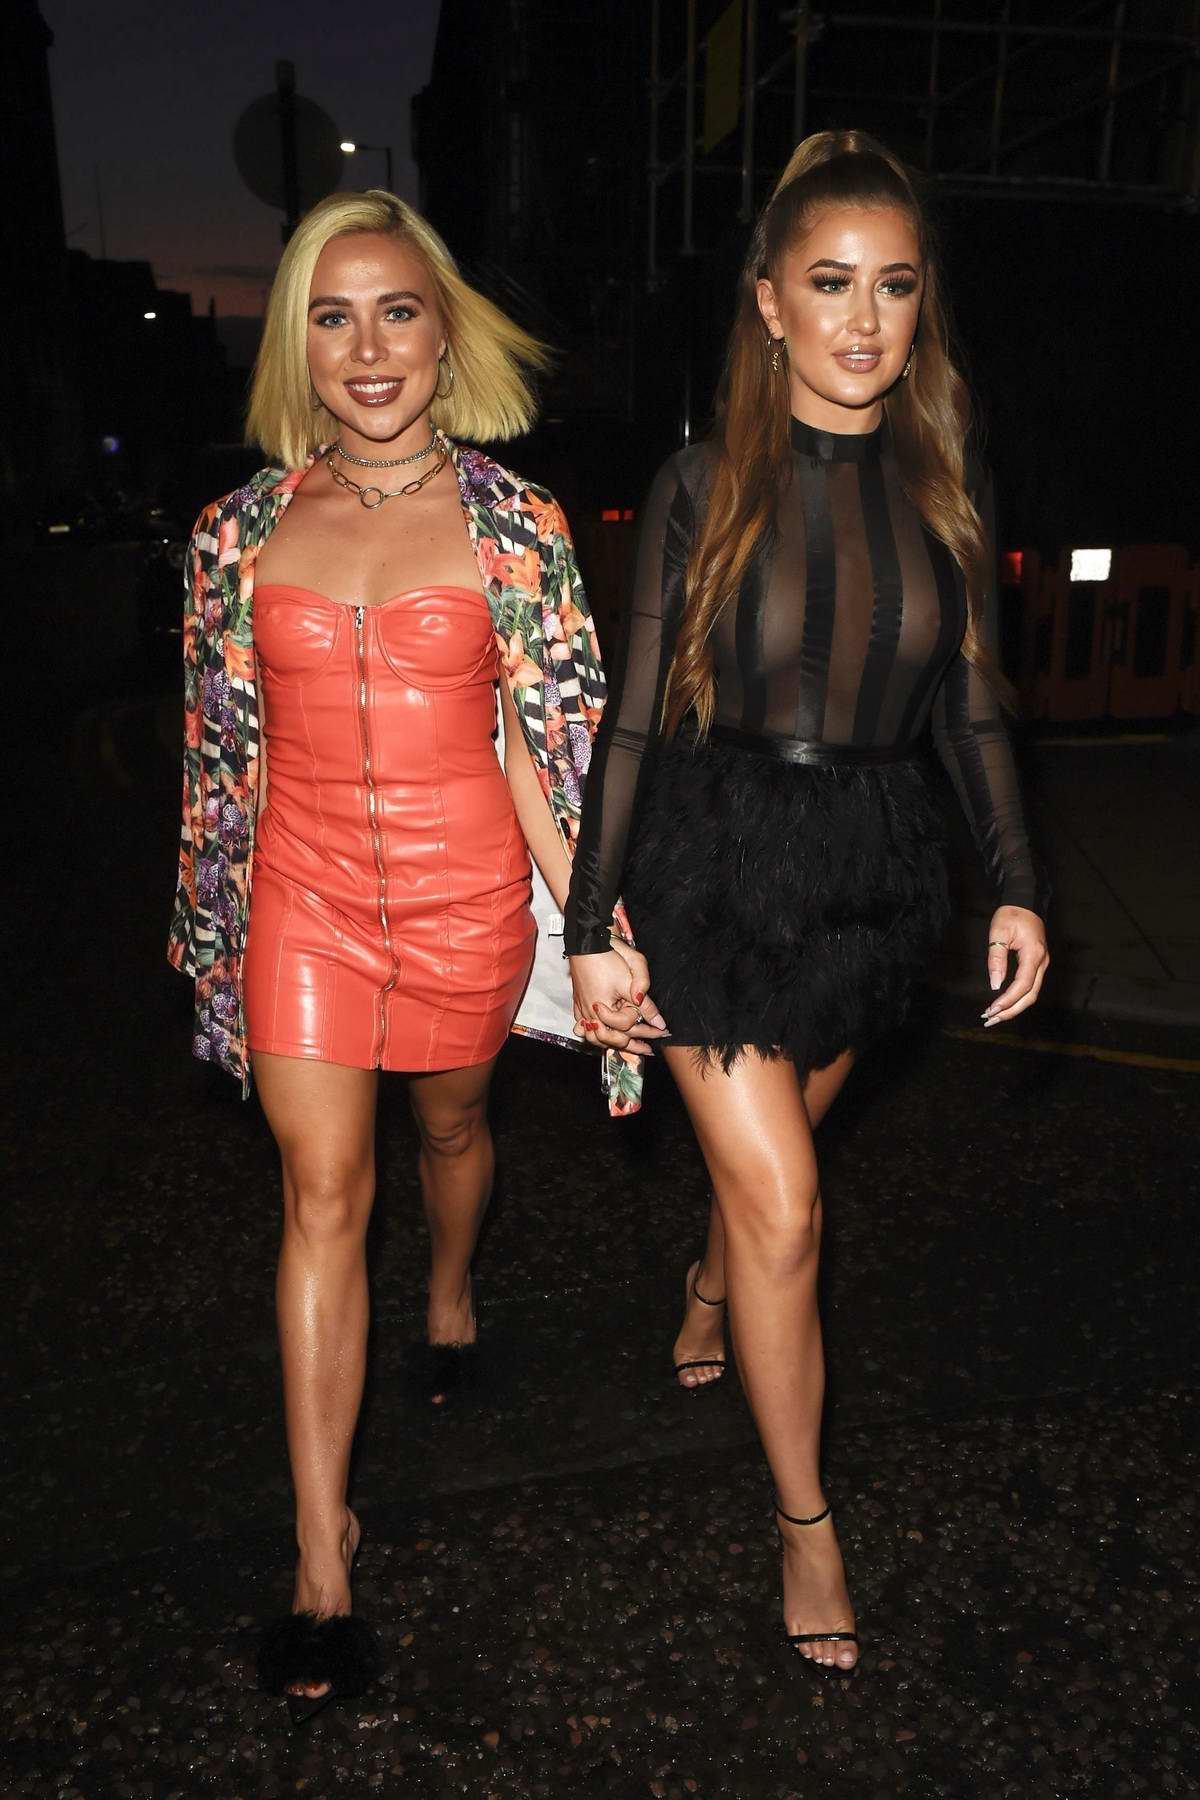 Georgia Steel and Gabby Allen attend Pretty Little Thing x Molly Mae launch at Rosso restaurant in Manchester, UK